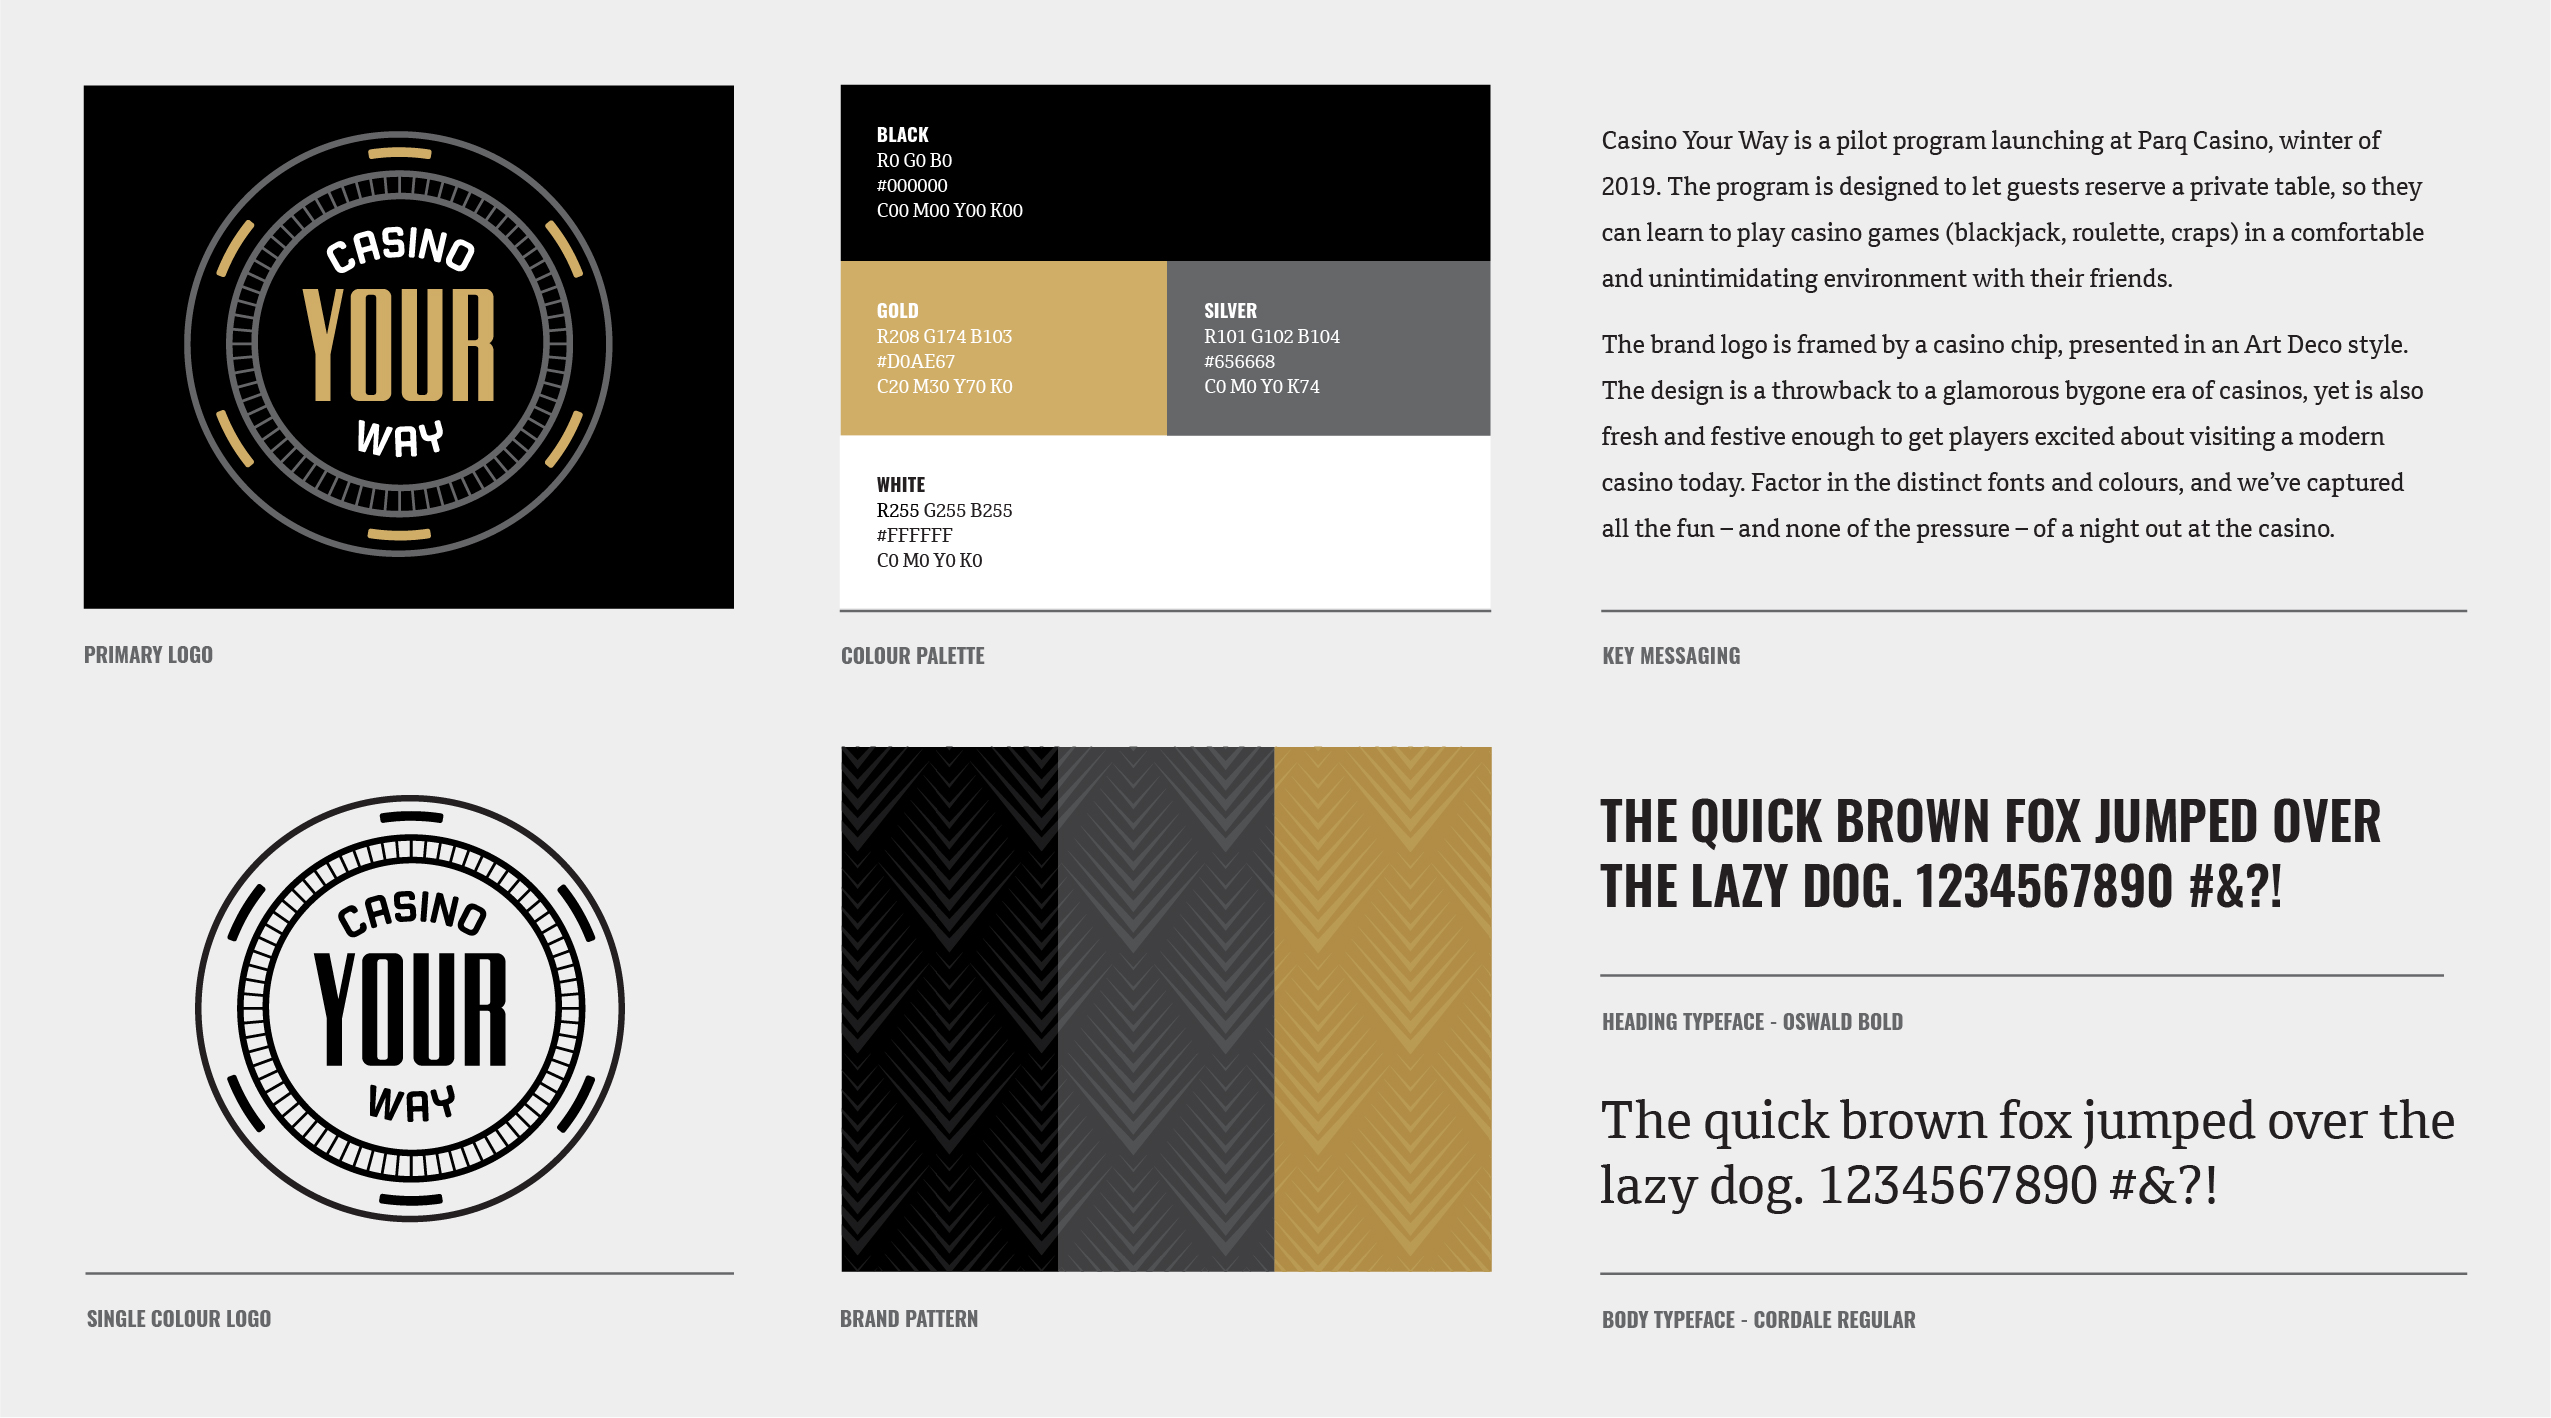 The Casino Your Way style guide provides an overview of the visual style for use by the client's marketing team